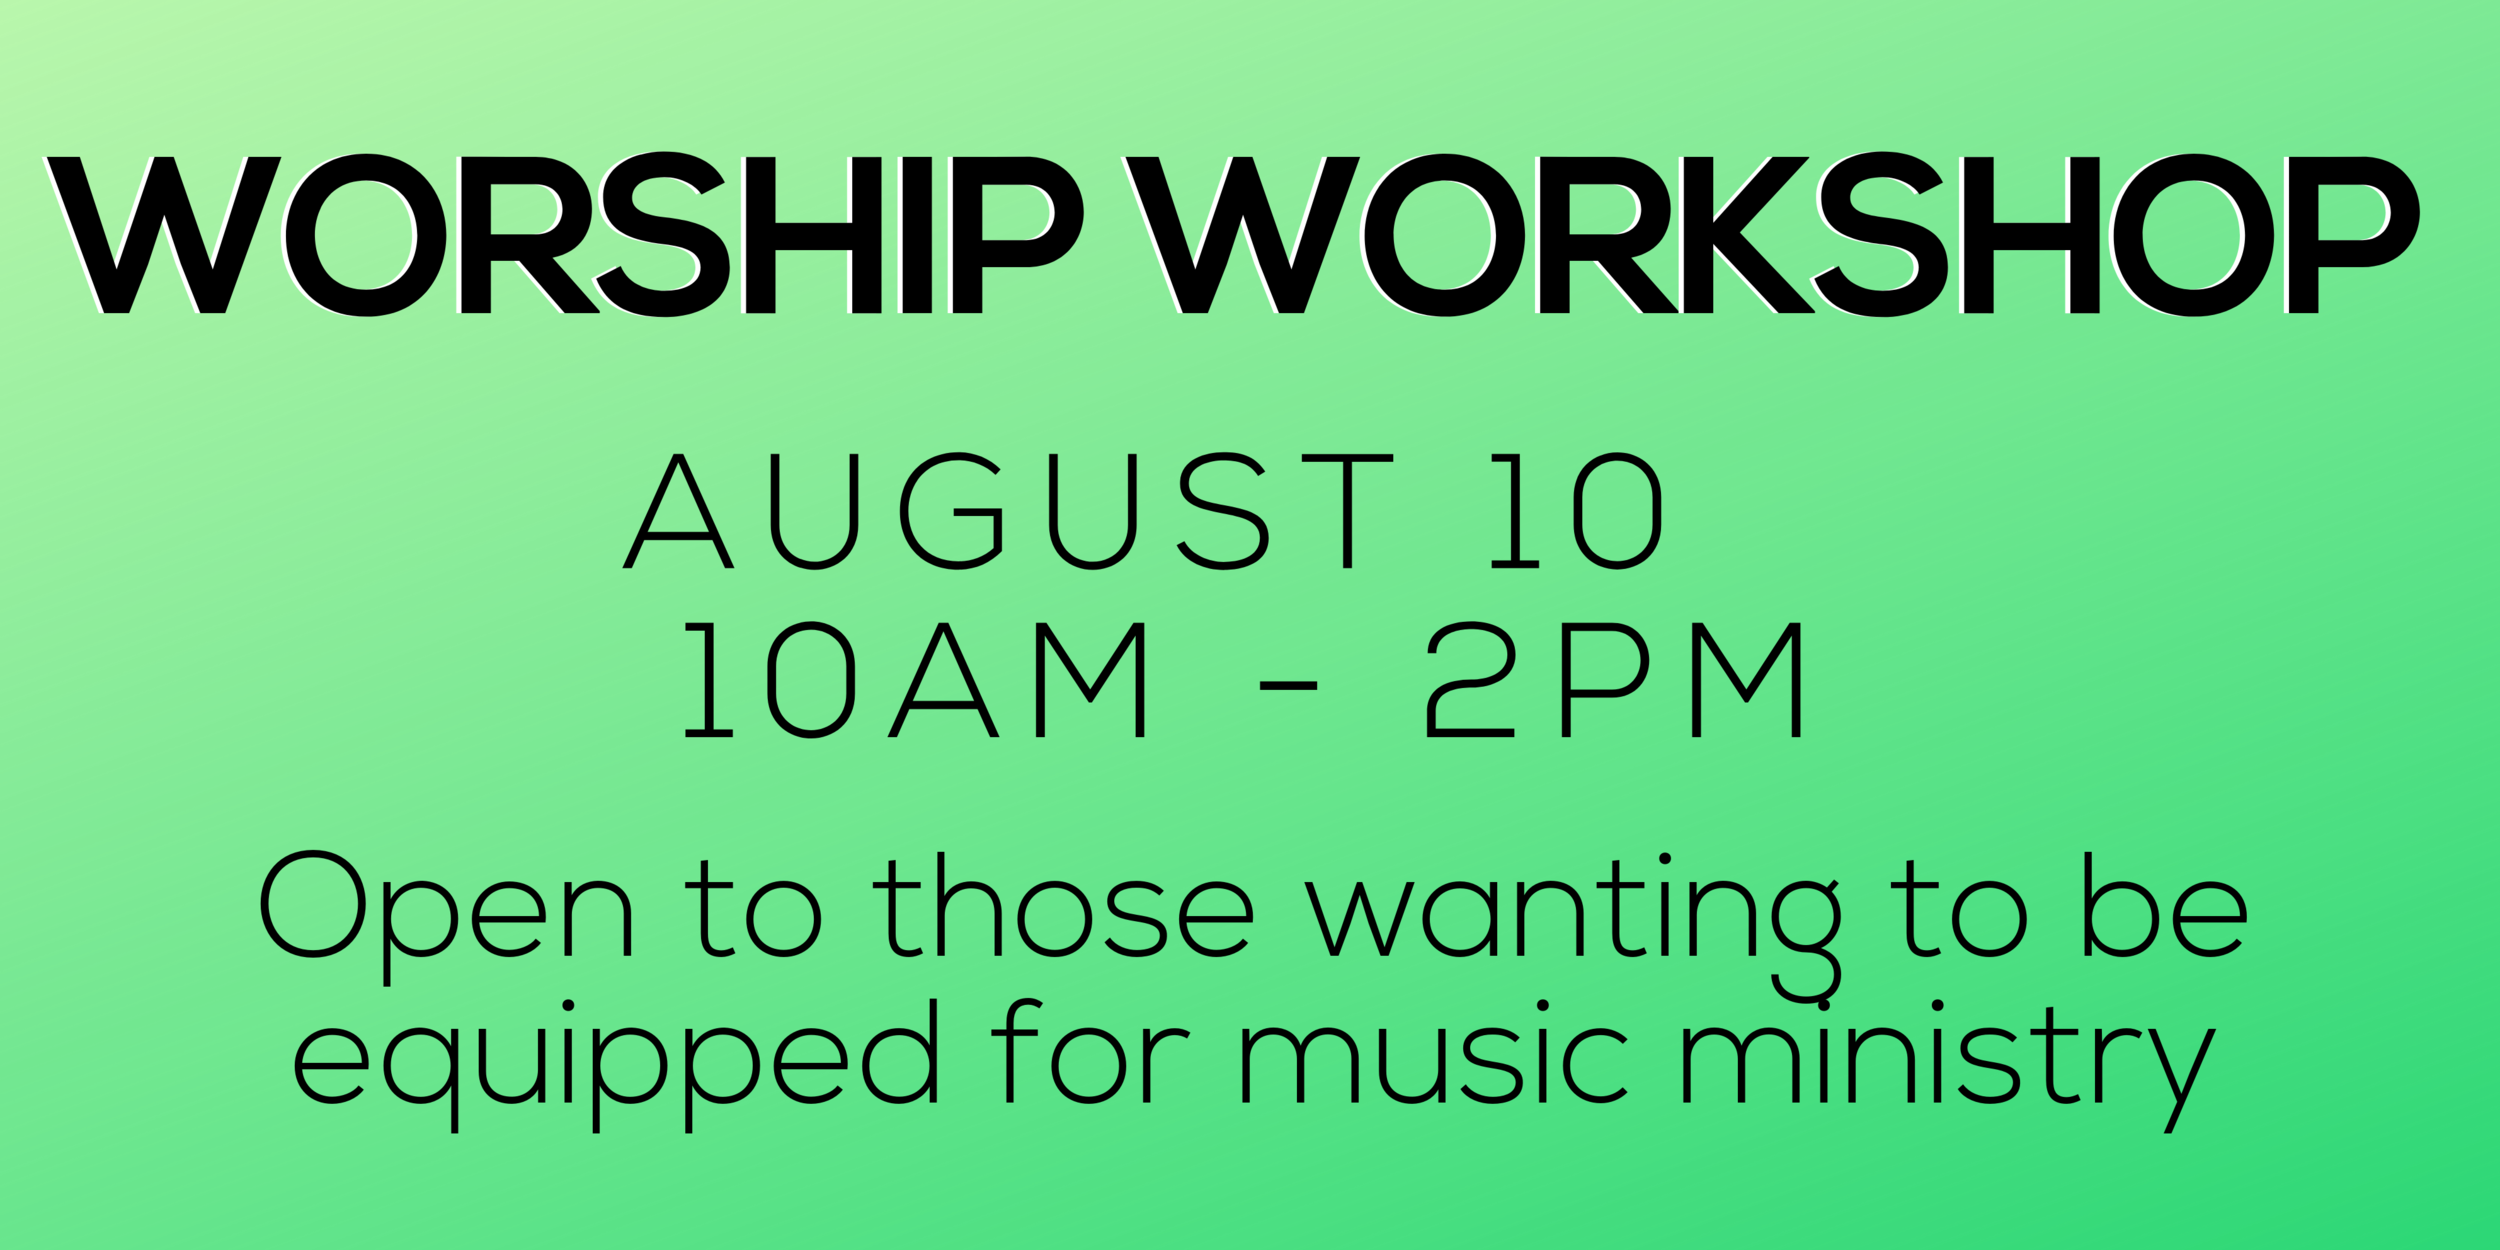 Worship Workshop at REACH Community for those interested in being equipped for worship ministry